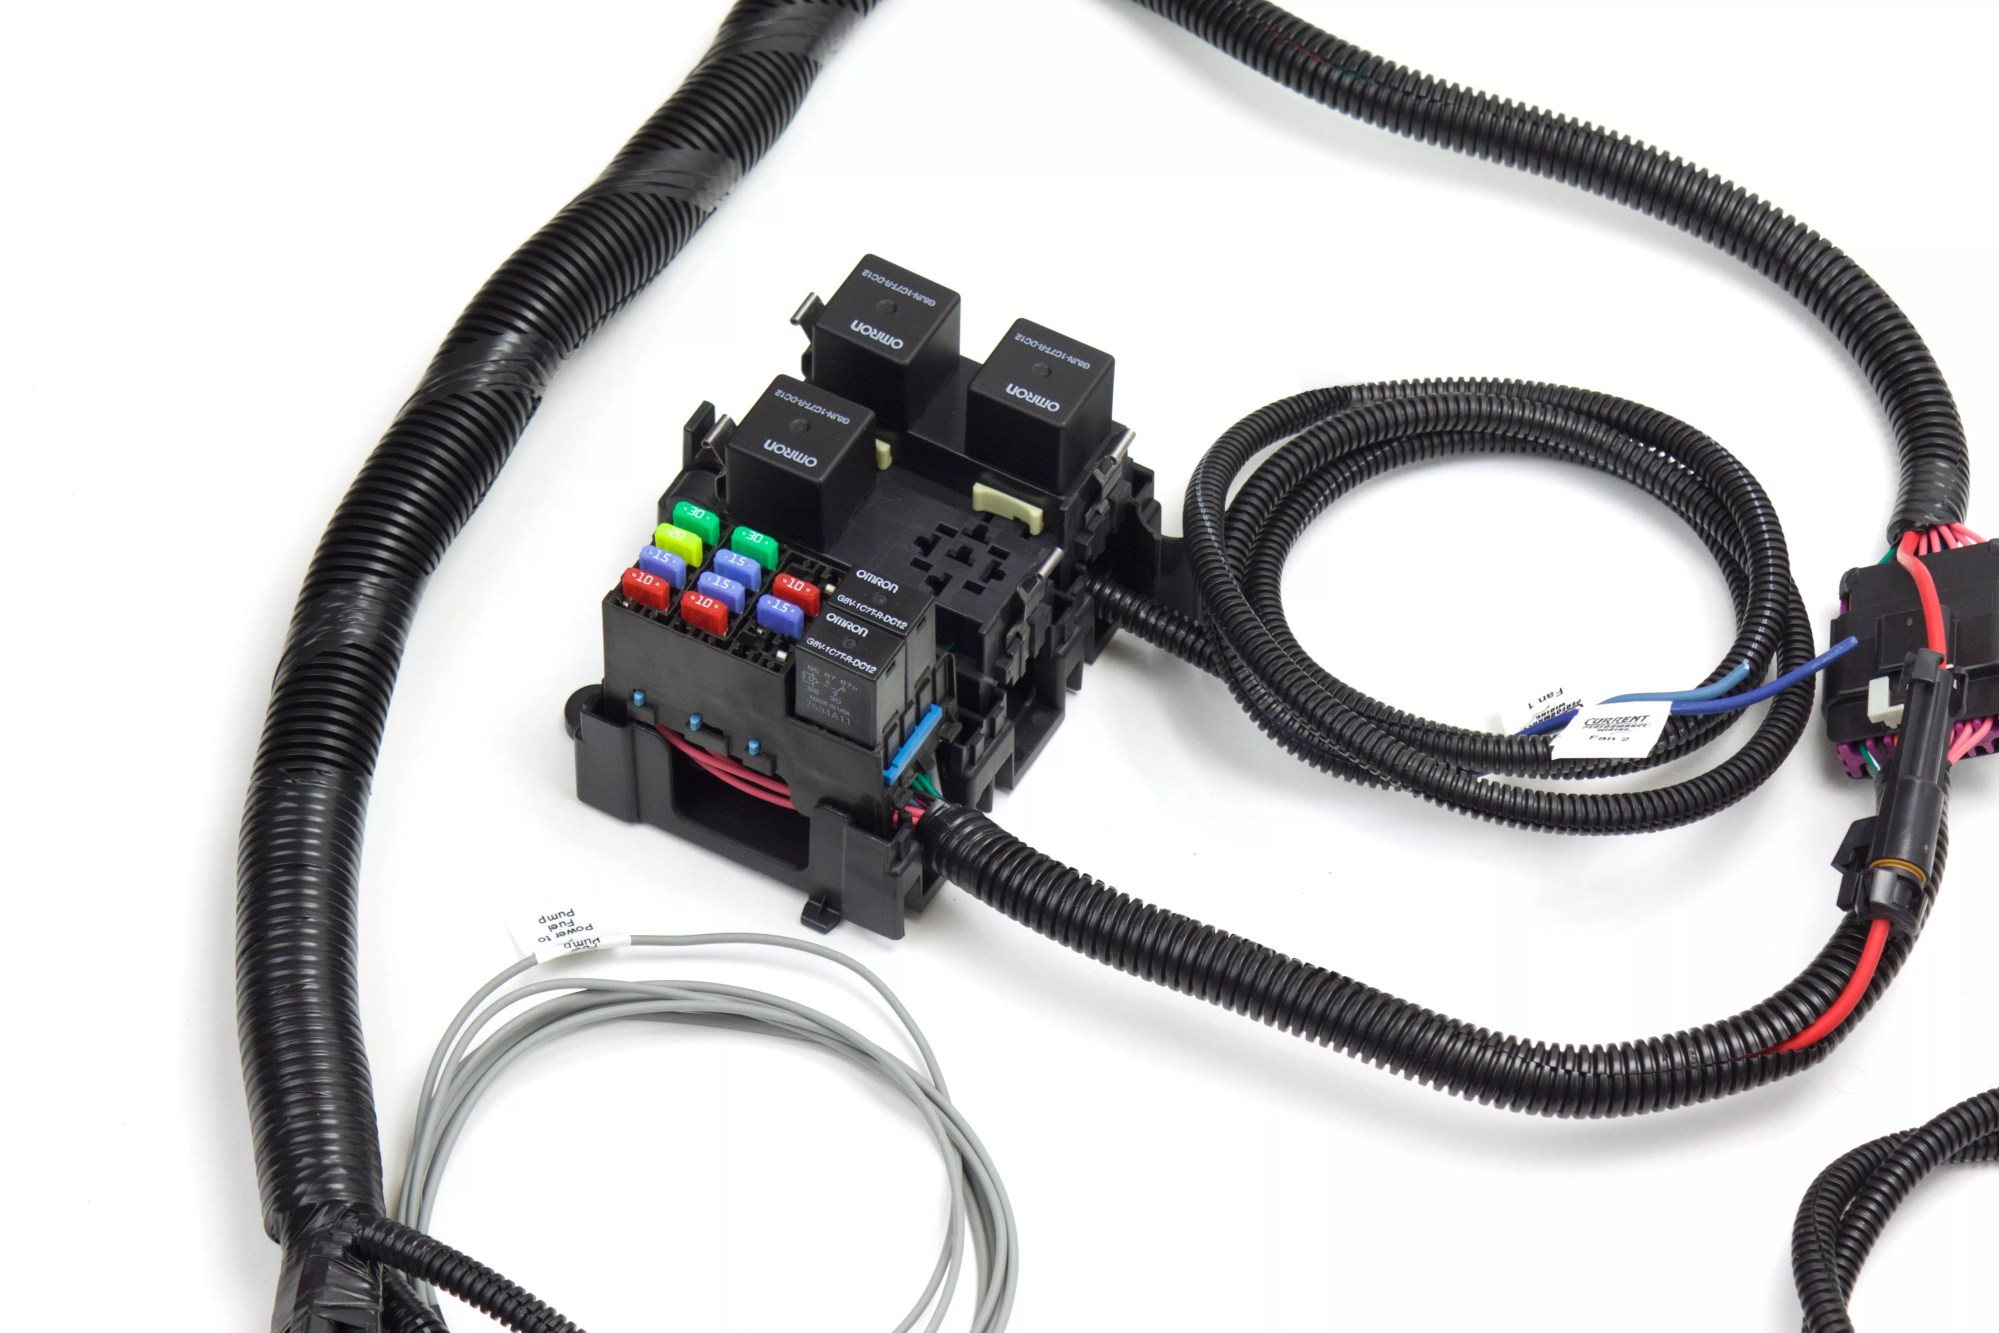 hight resolution of 58x ls2 ls3 ls7 stand alone engine harness for e38 ecu cpw lsx rh currentperformance com chevy truck wiring harness subaru wiring harness